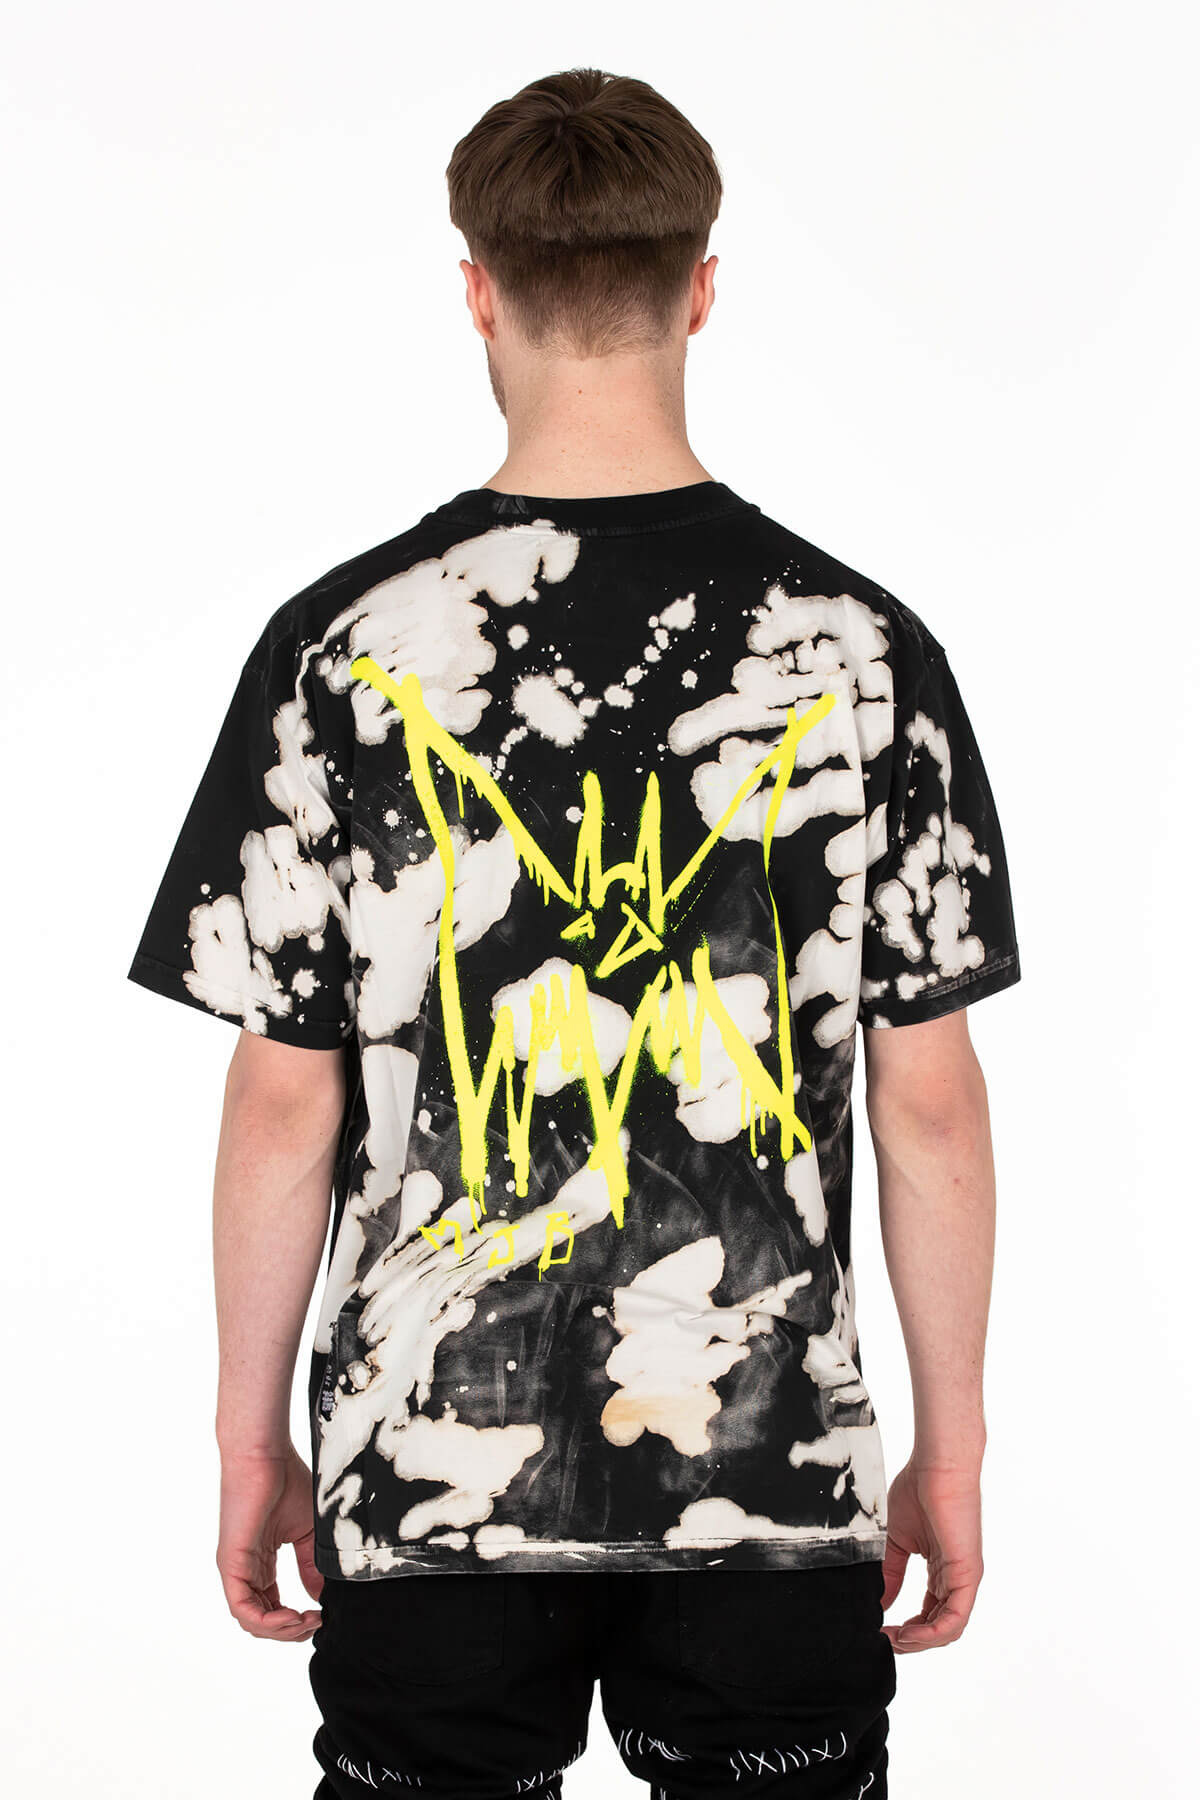 Festival T Shirt TIE DYE BLACK AND WHITE - MJB